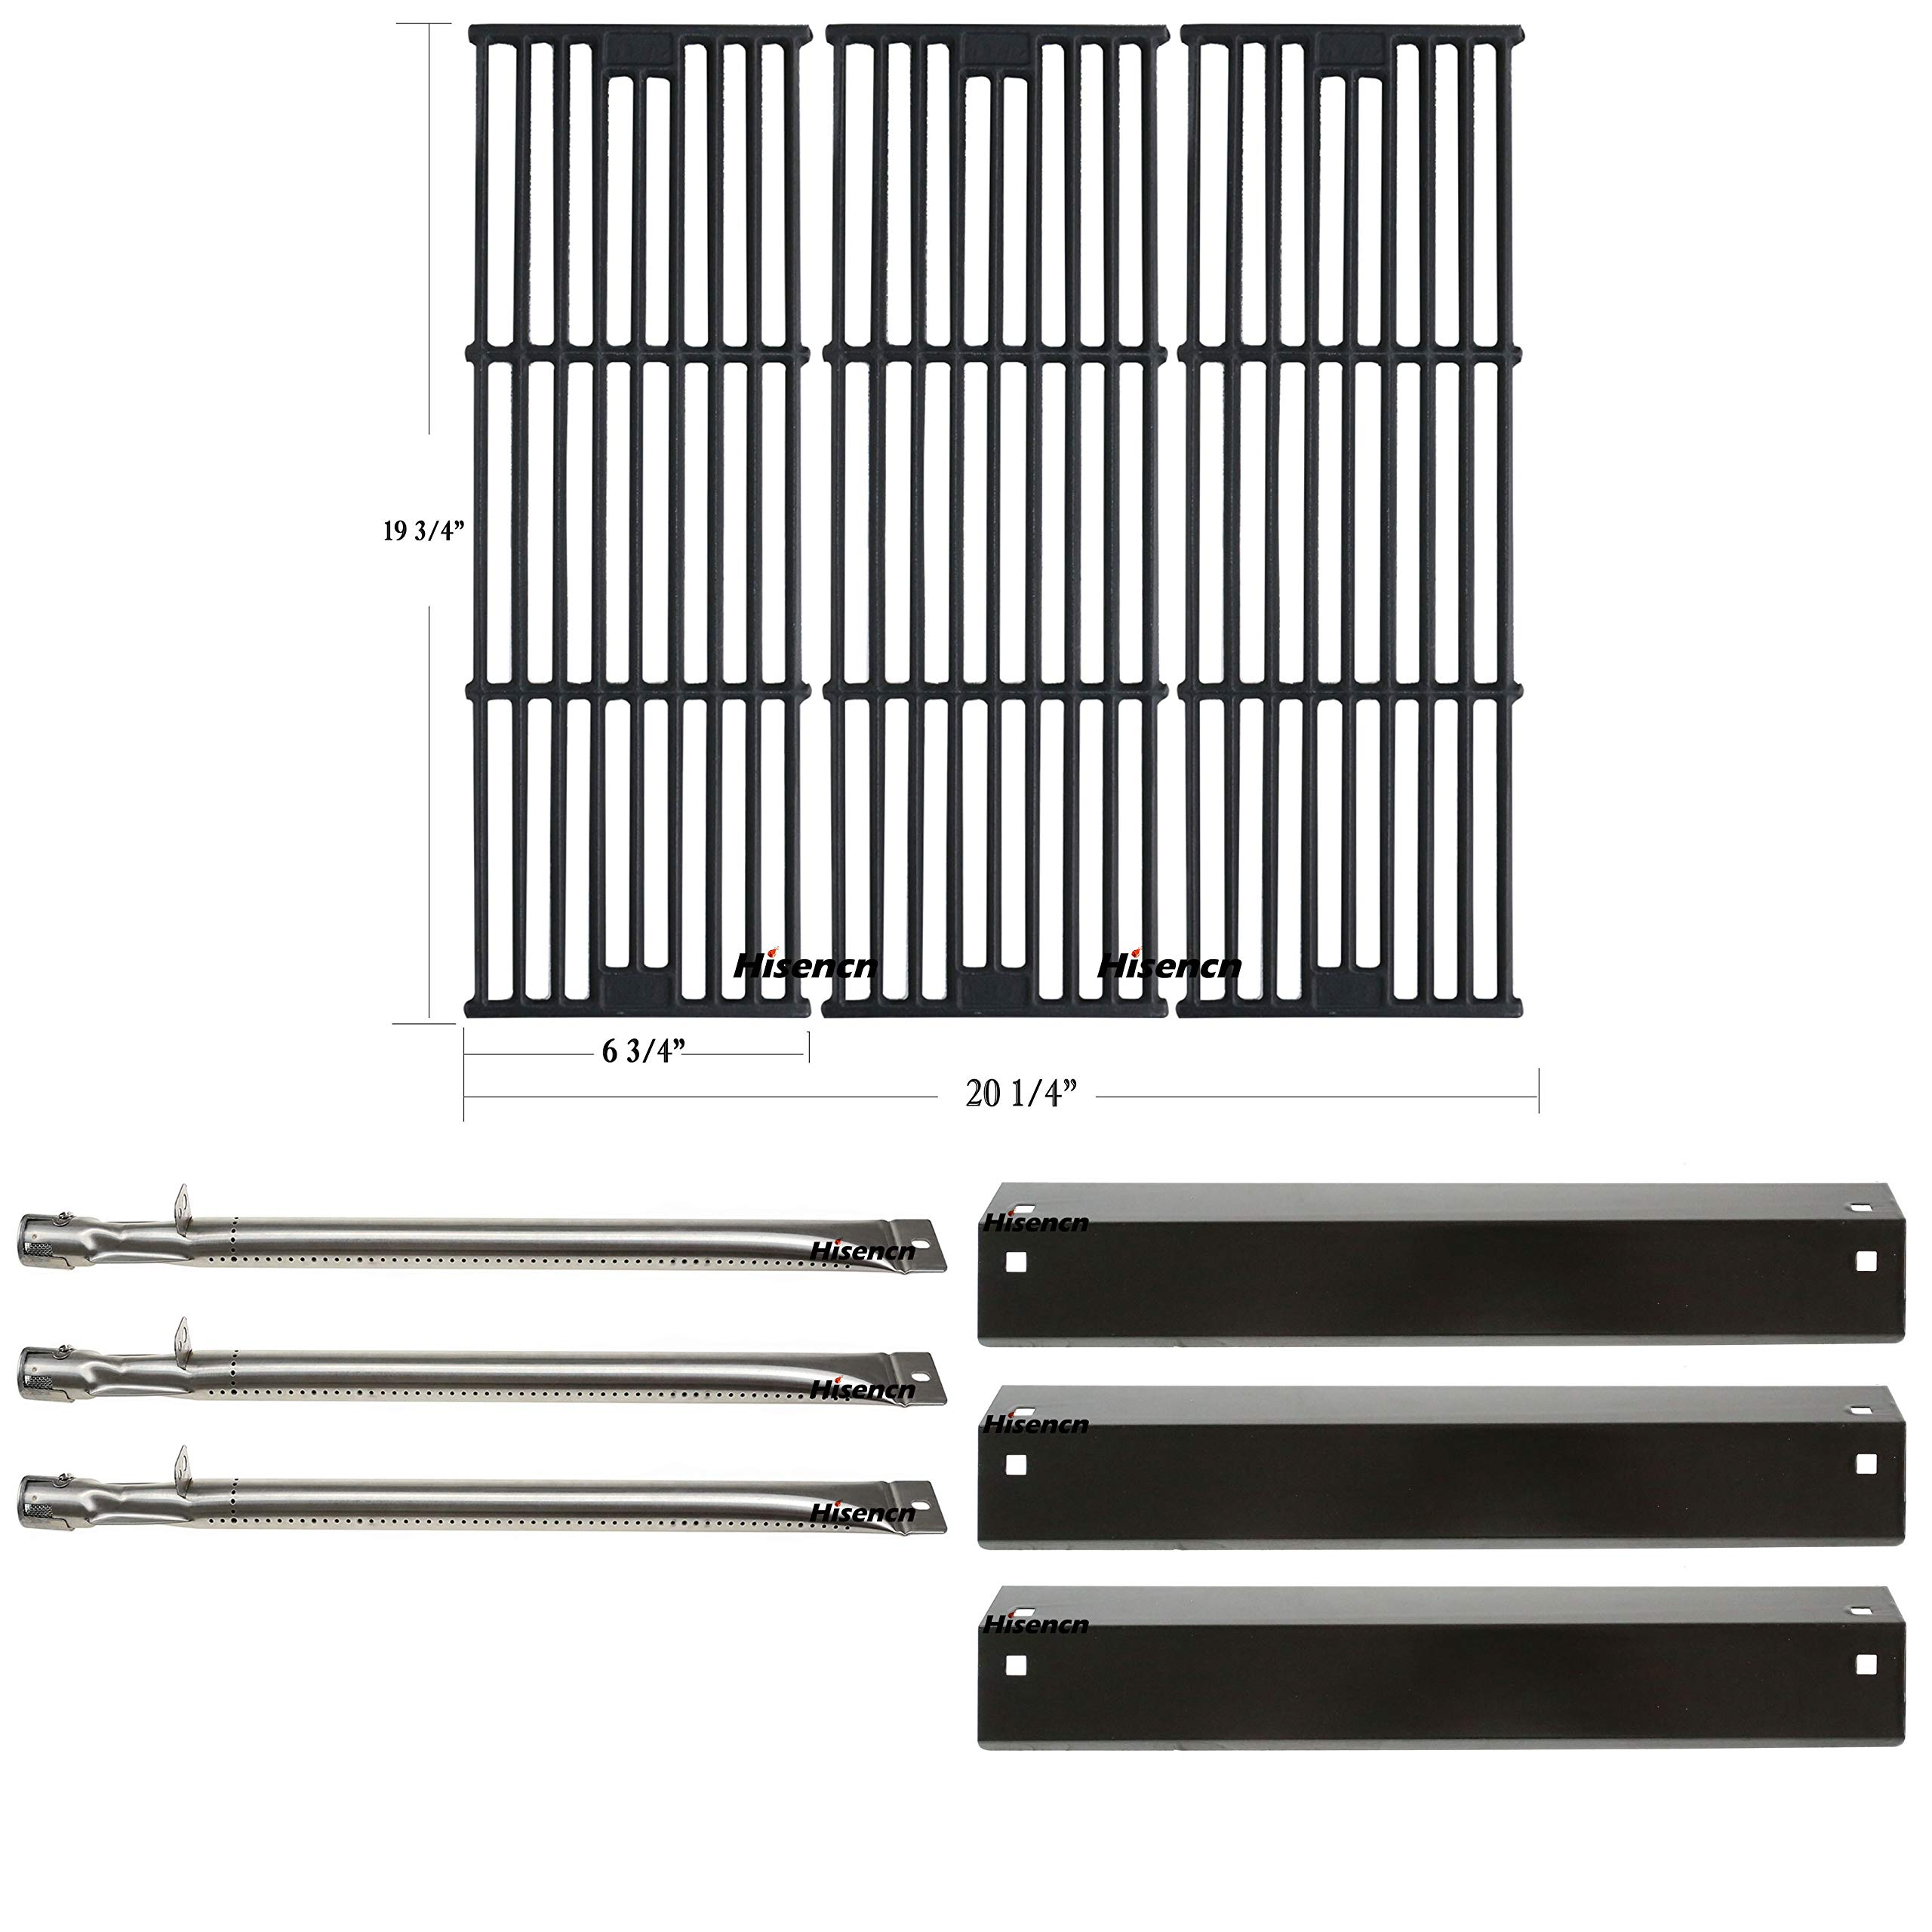 Hisencn Replacement Rebuild Repair Kit Fits Chargriller 3001, 3008, 3030, 4000, 5050, 5252 Gas Grill Models, Stainless Steel Burner, Porcelain Steel Heat Plate, Cast Iron Cooking Grid Grates